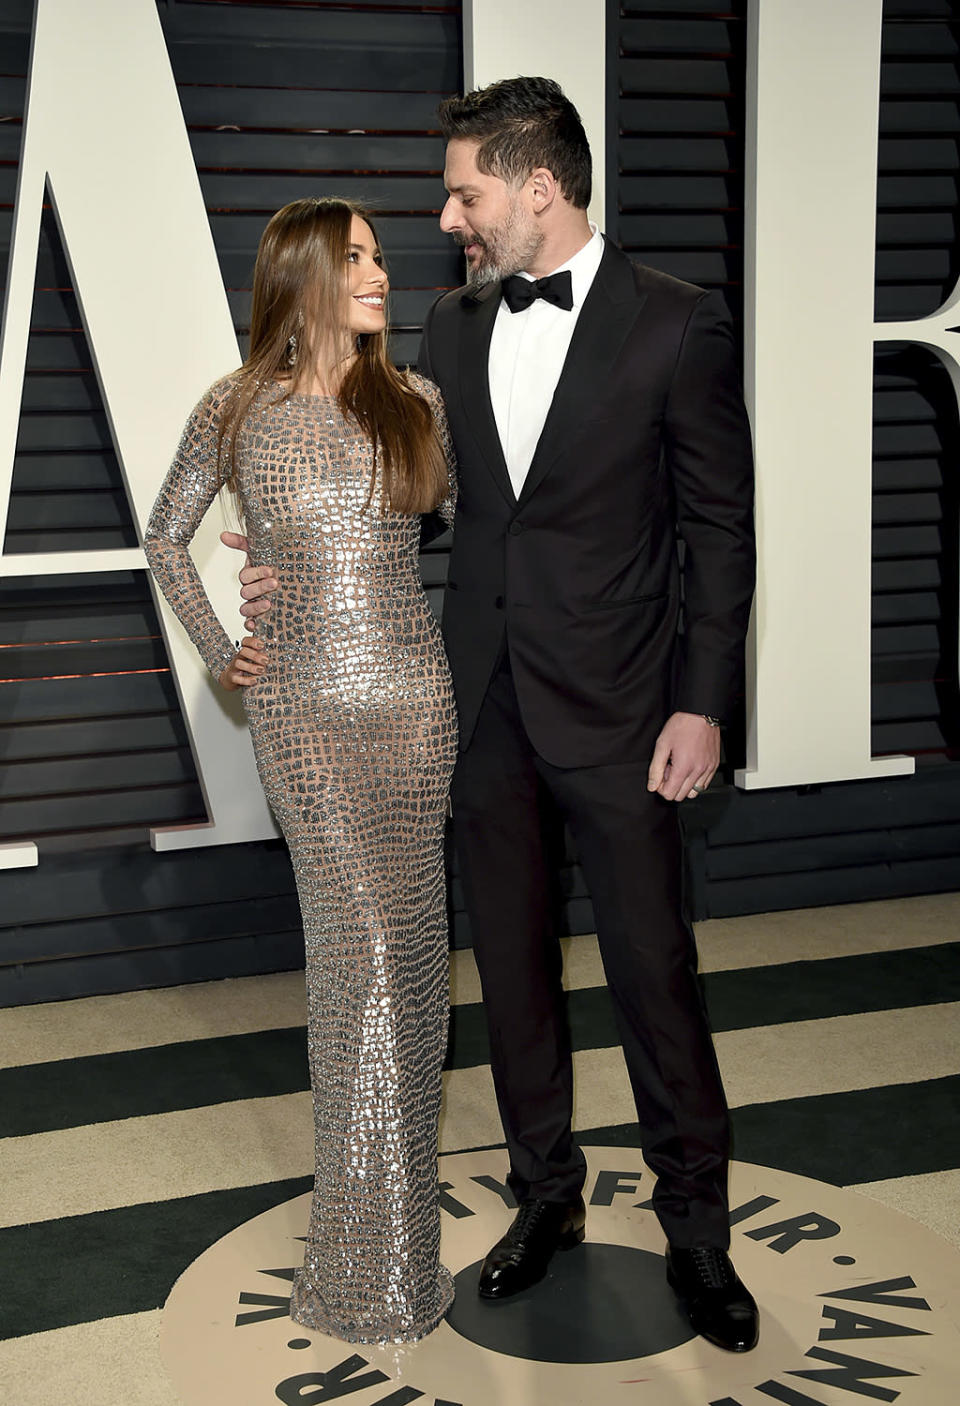 <p>Sofía Vergara, left, and Joe Manganiello arrive at the Vanity Fair Oscar Party on Sunday, Feb. 26, 2017, in Beverly Hills, Calif. (Photo by Evan Agostini/Invision/AP) </p>